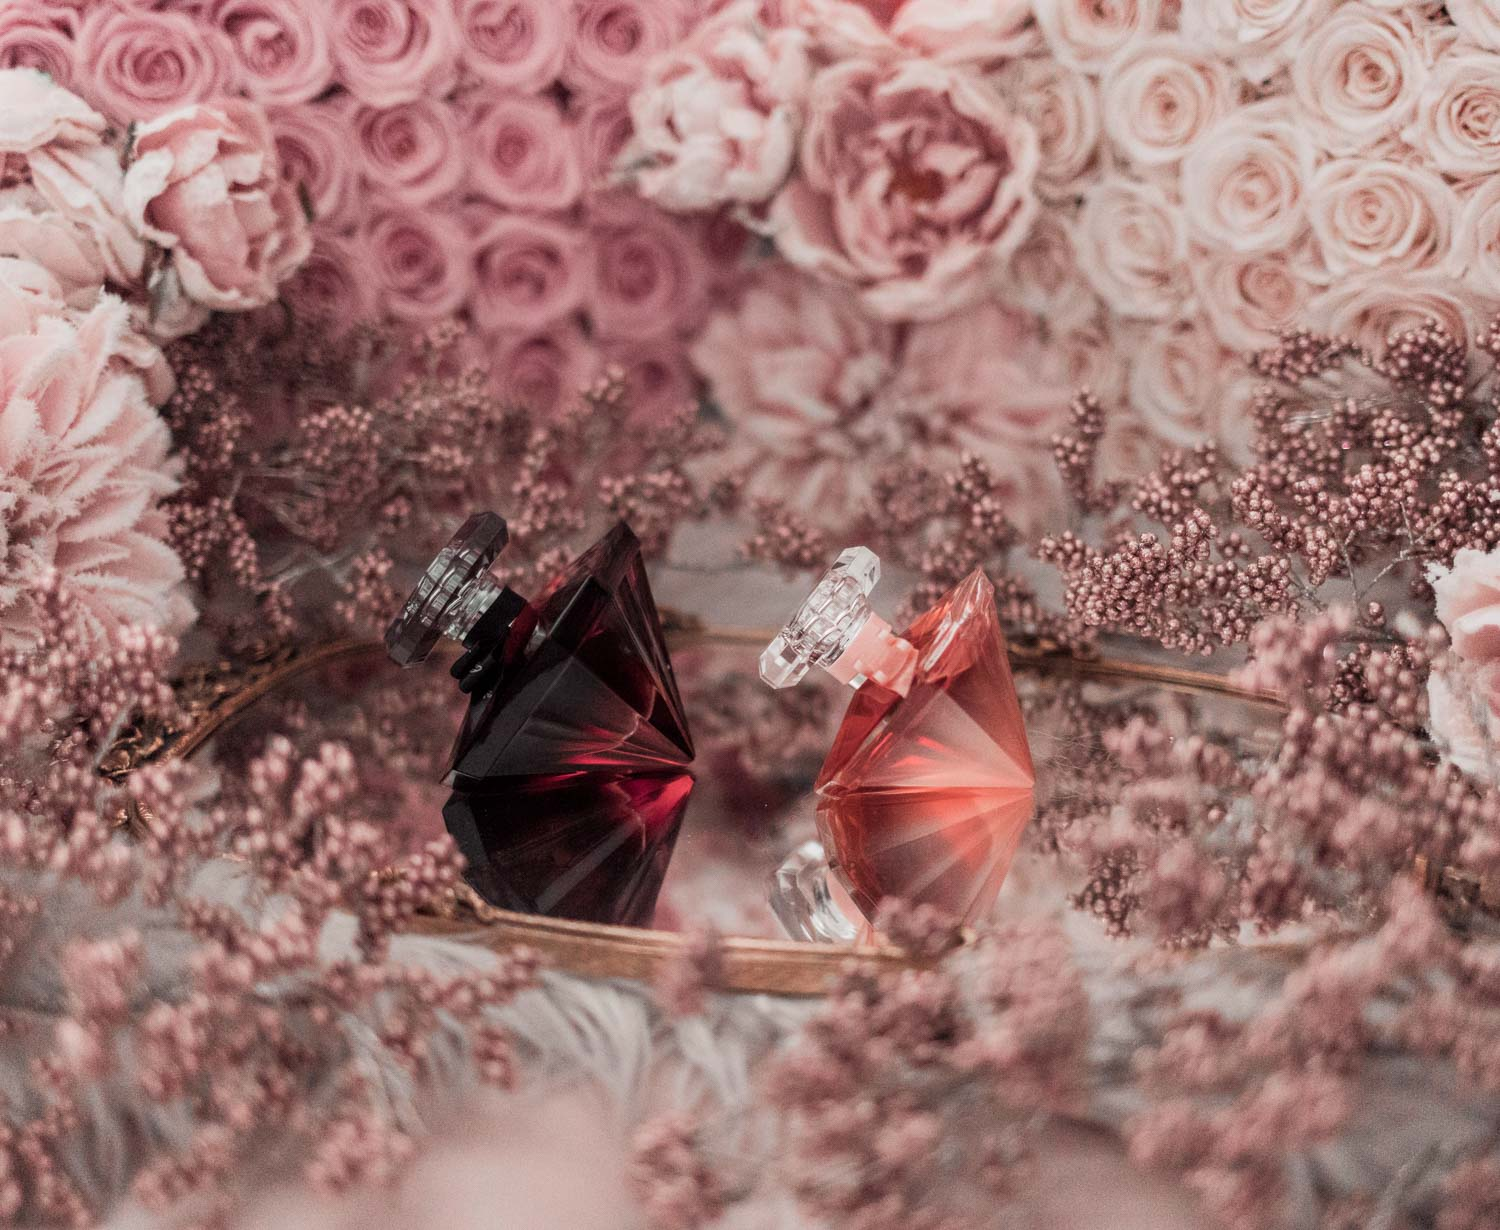 Feminine fashion blogger Elizabeth Hugen of Lizzie in Lace shares the best feminine perfumes and her girly fragrance collection including Lancome La Nuit Tresor